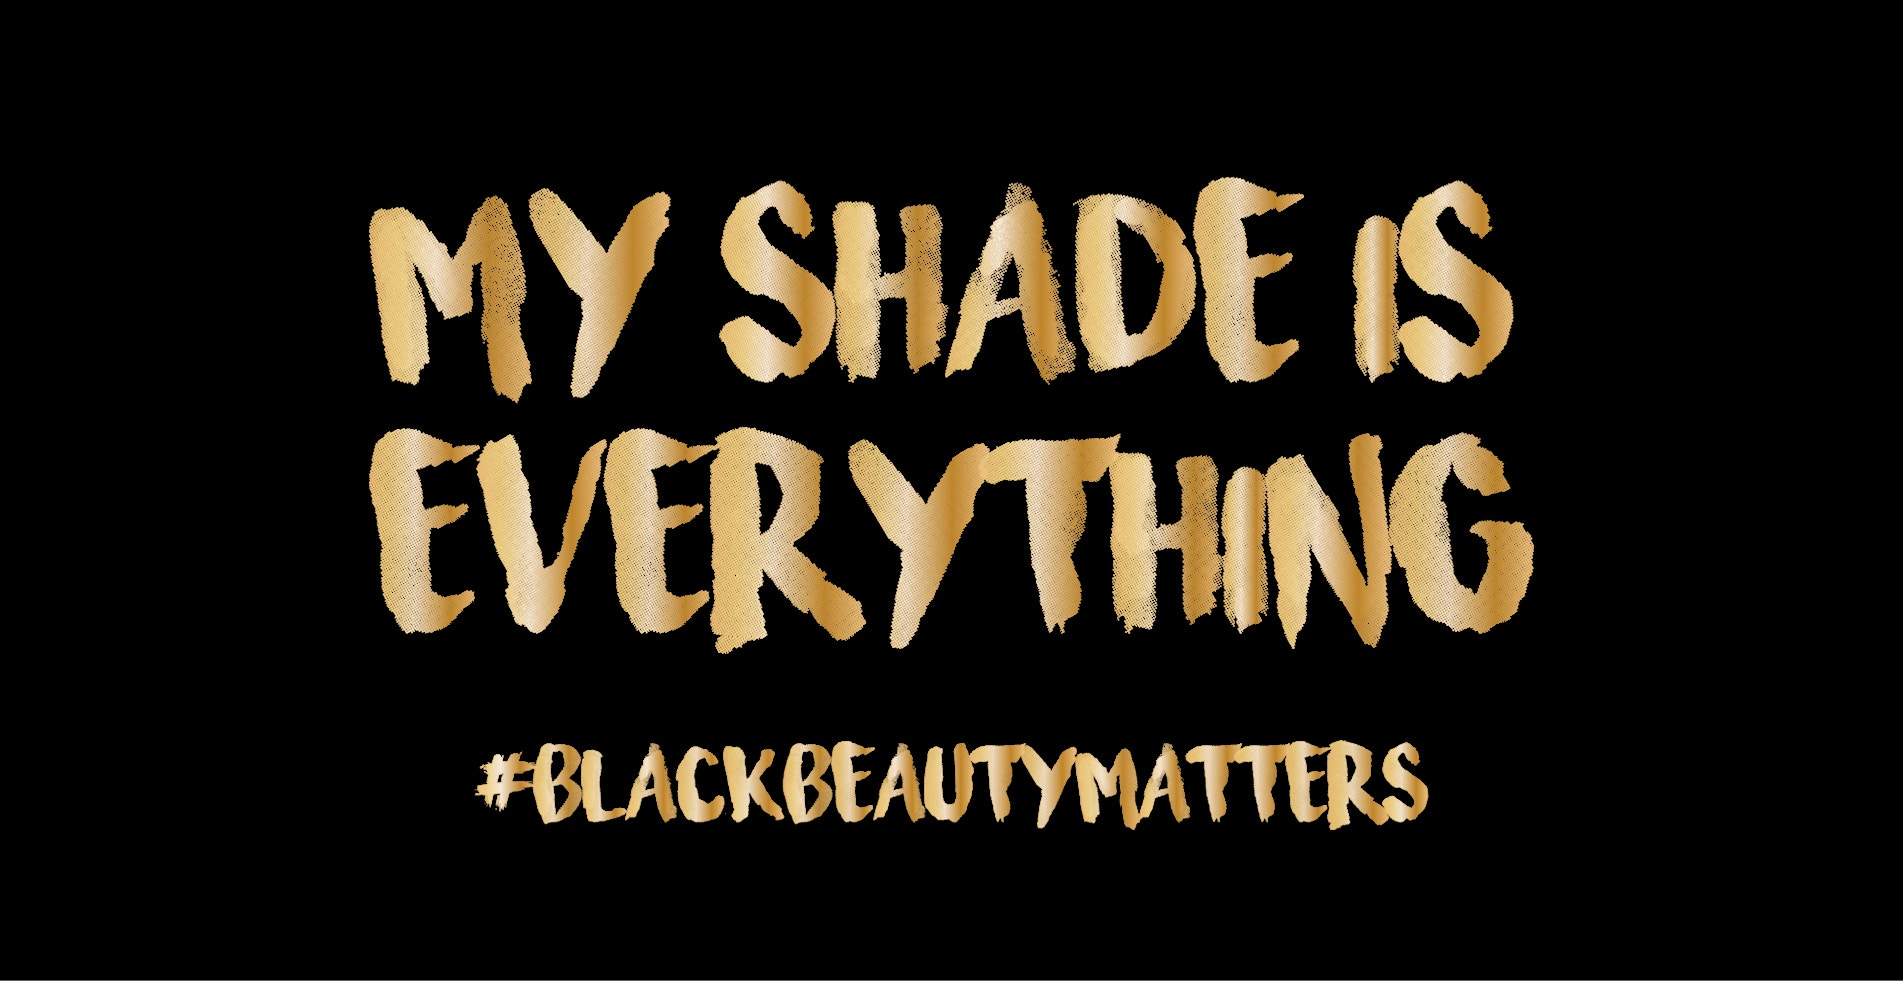 My Shade Is Everything #BlackBeautyMatters - Gold text with black background